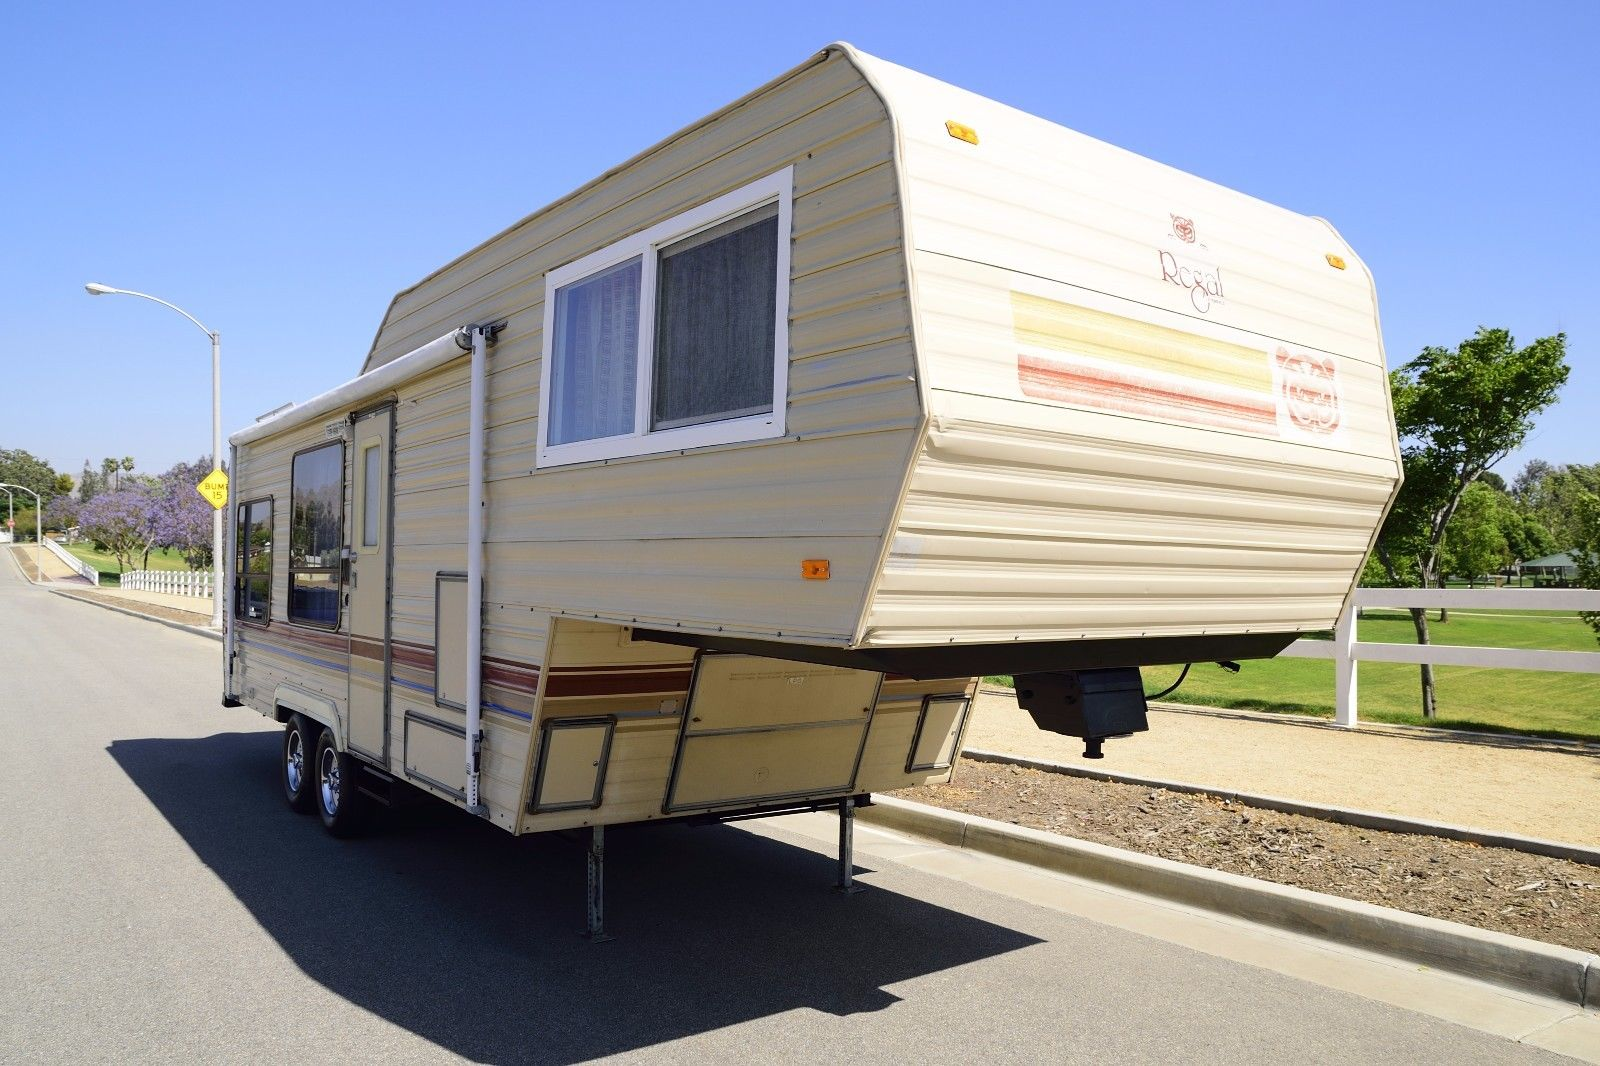 Extra Clean 1987 Fleetwood Prowler Regal Loaded camper for sale